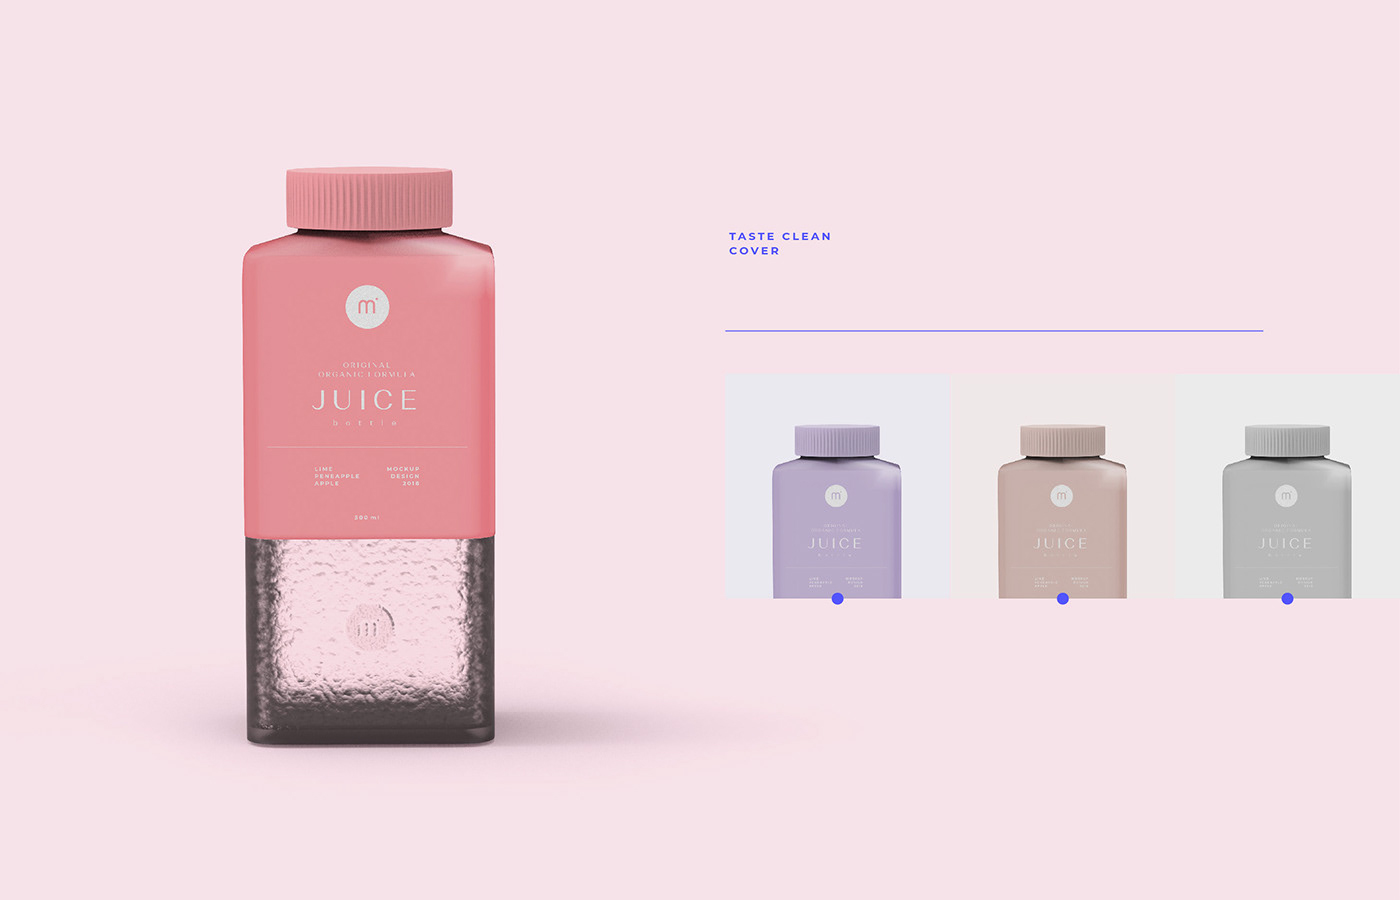 Free-Juice-Bottle-Mockup-PSD-2018-1